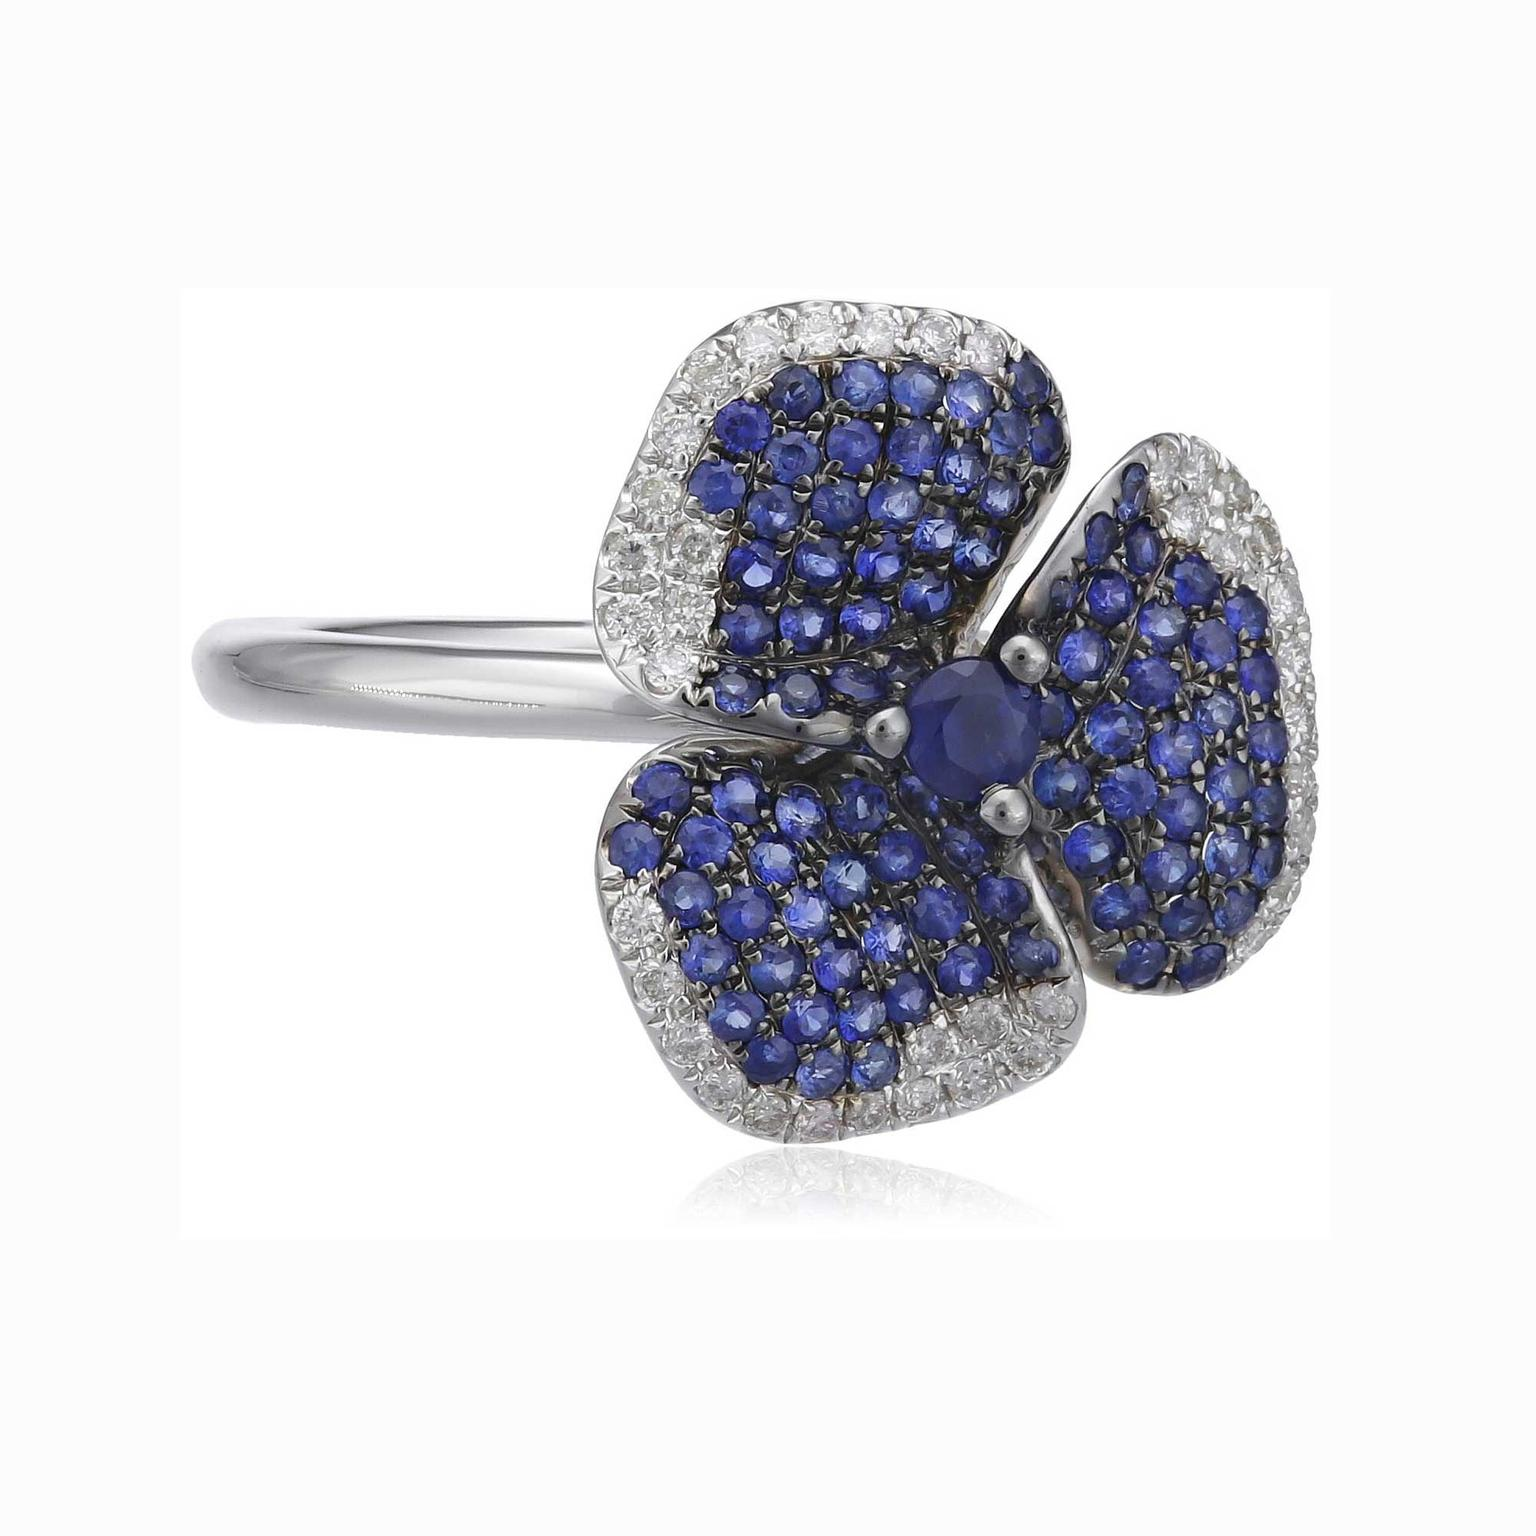 AS29 blue sapphire flower ring